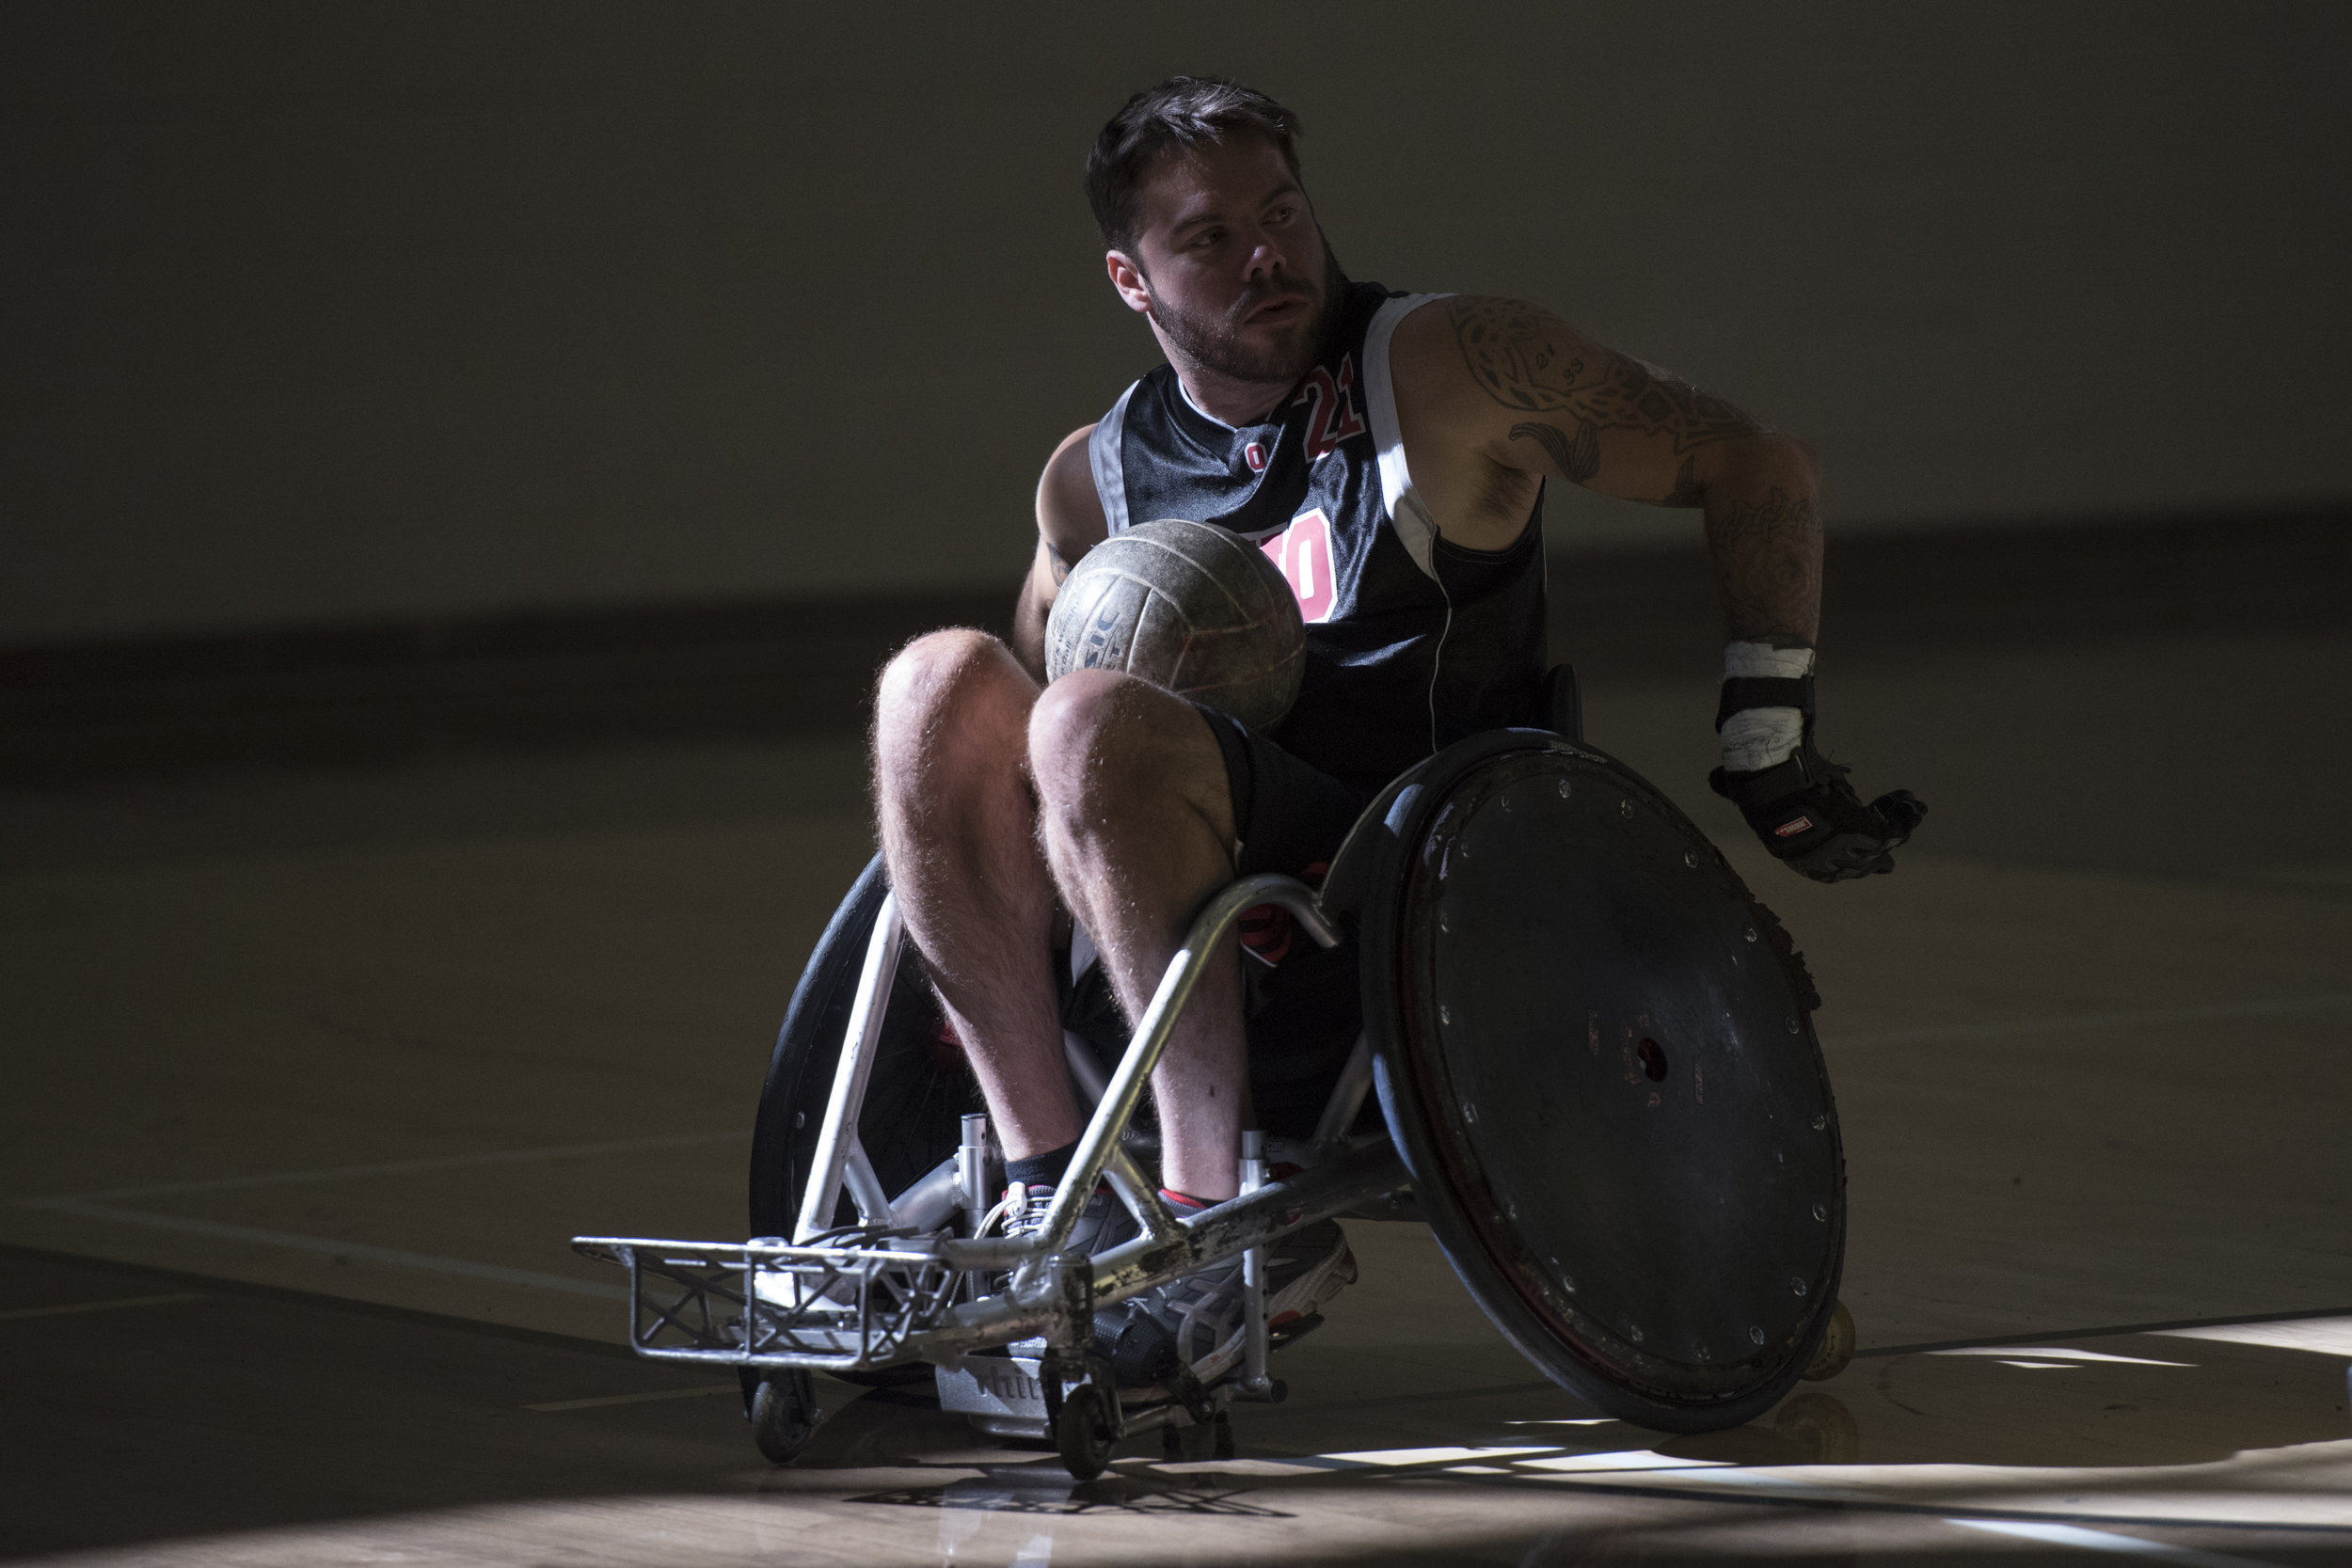 Ohio University College of Health Sciences and Professions hosts a Quad Rugby tournament with The Buckeye Blitz quad rugby team at Ping Center on Sept. 30, 2017.